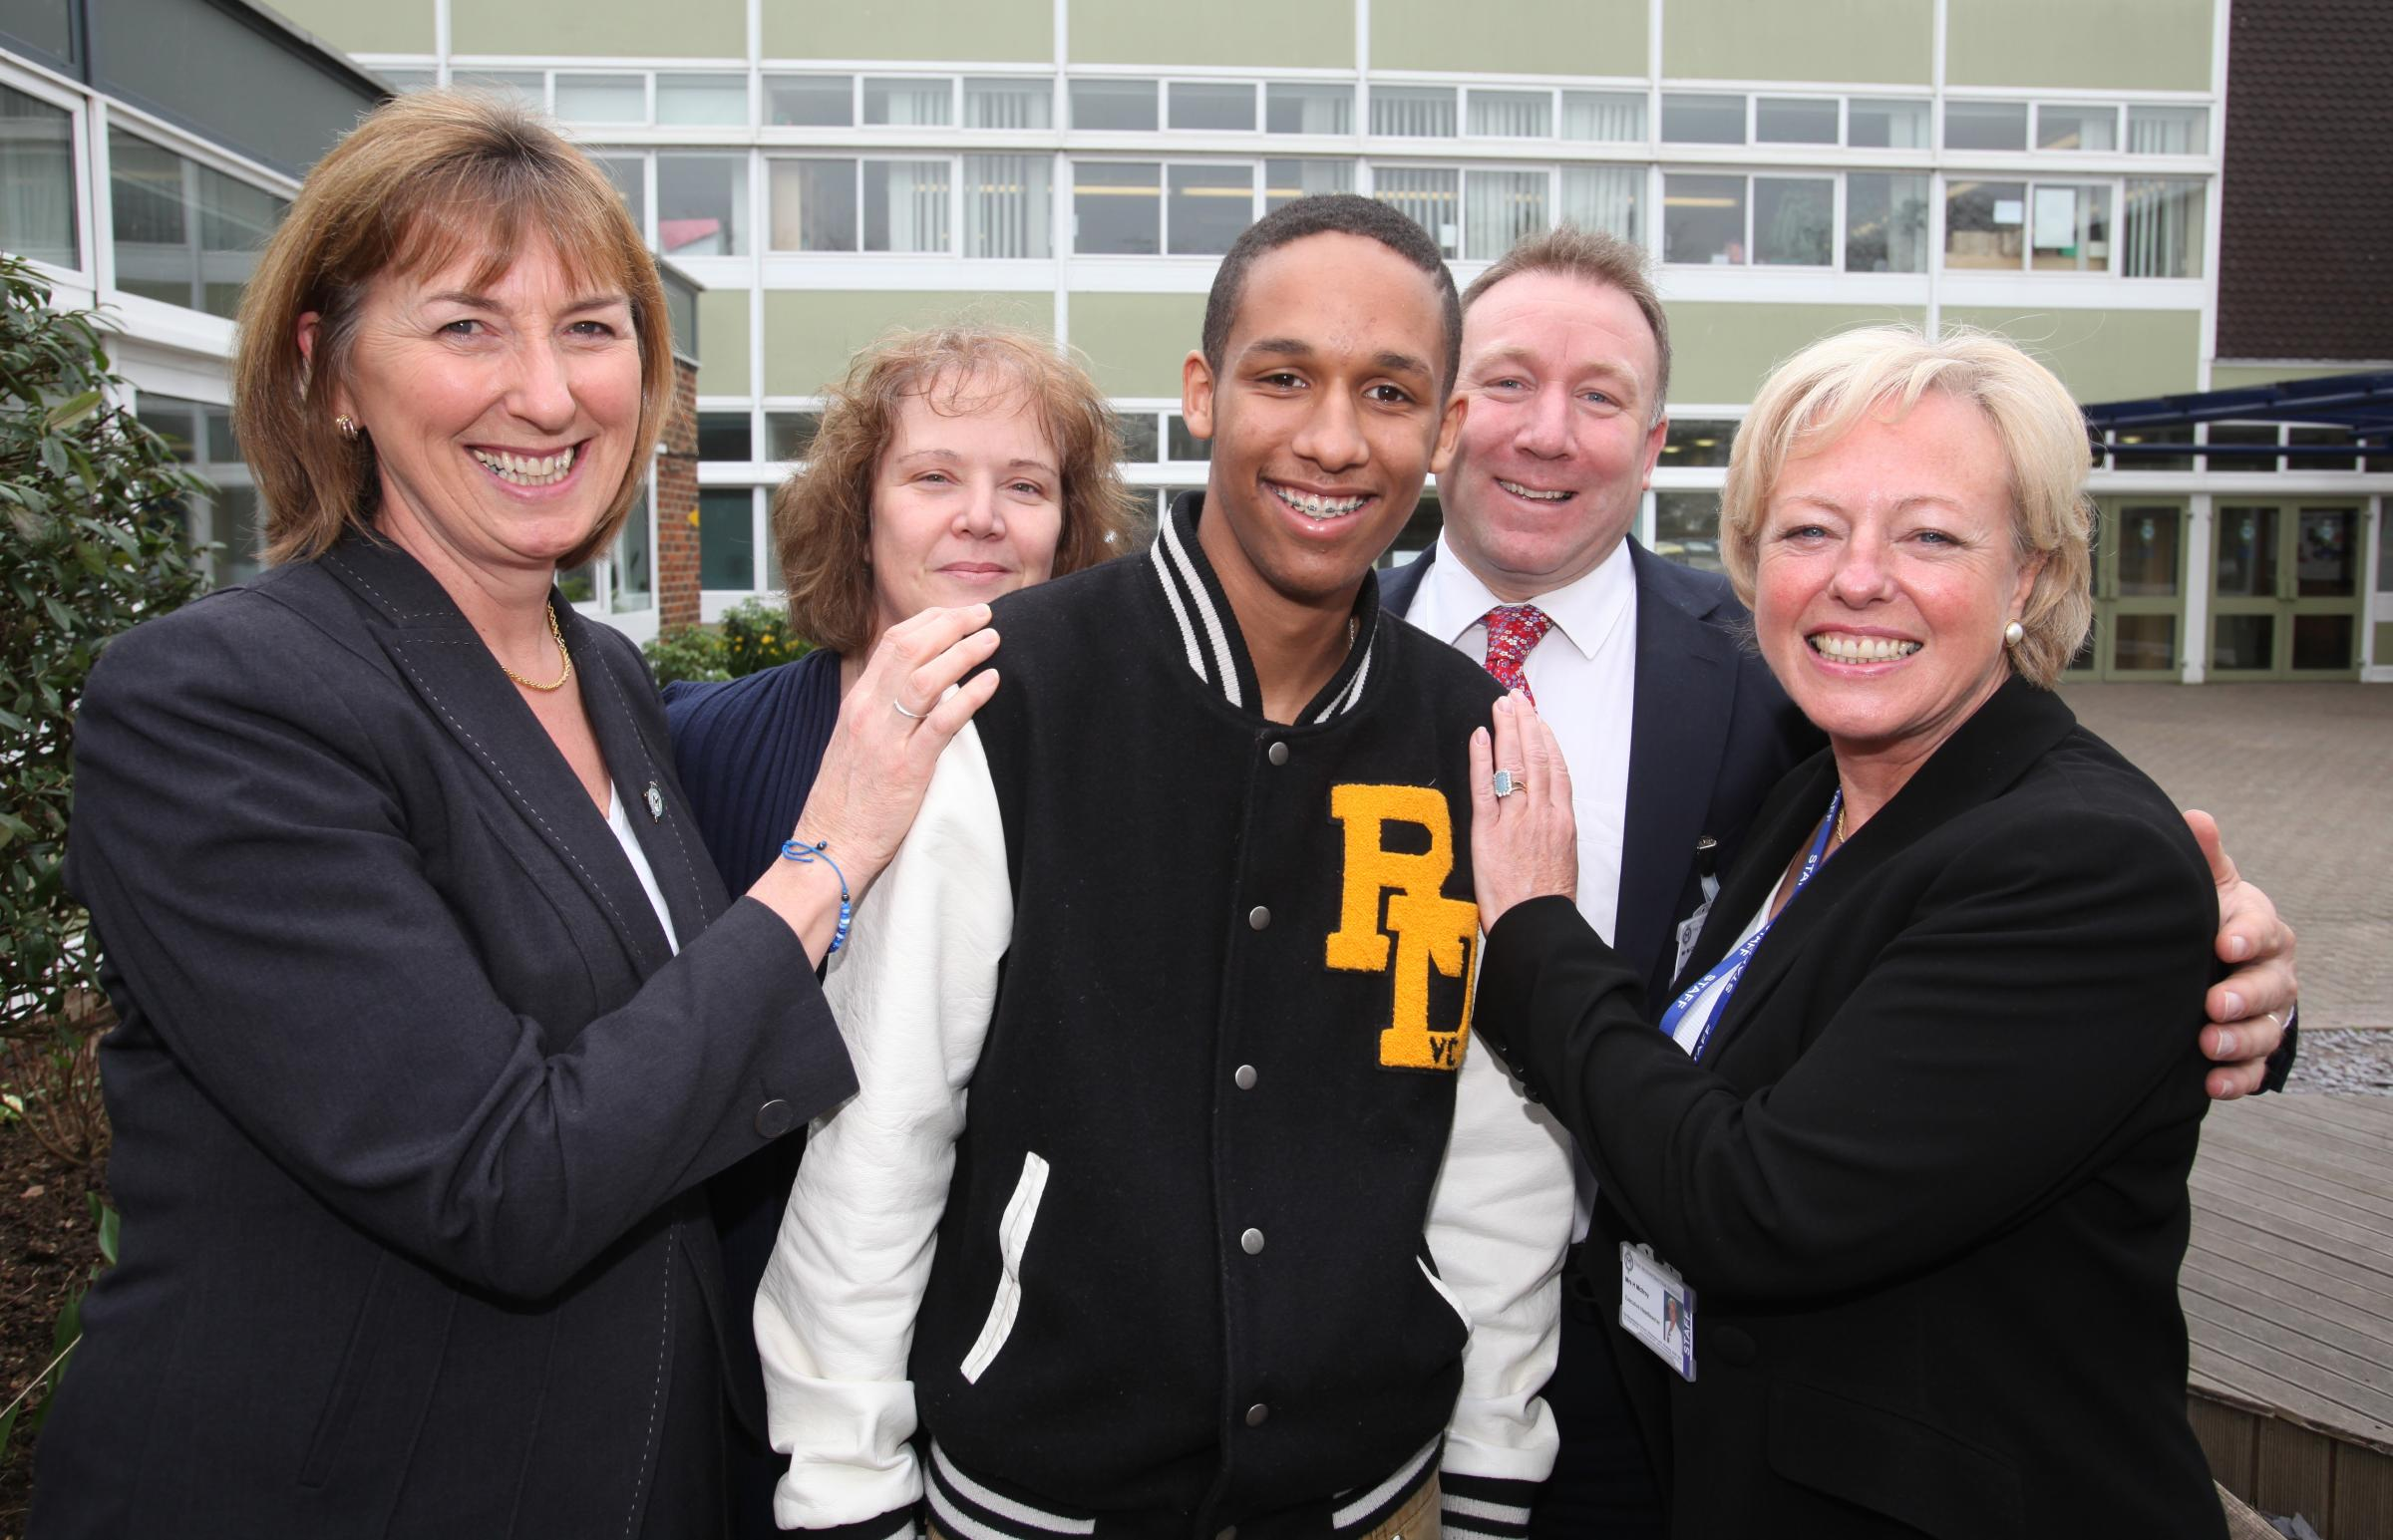 Sam Mangoro with Mountbatten headteacher, Heather McIlroy and other members of staff